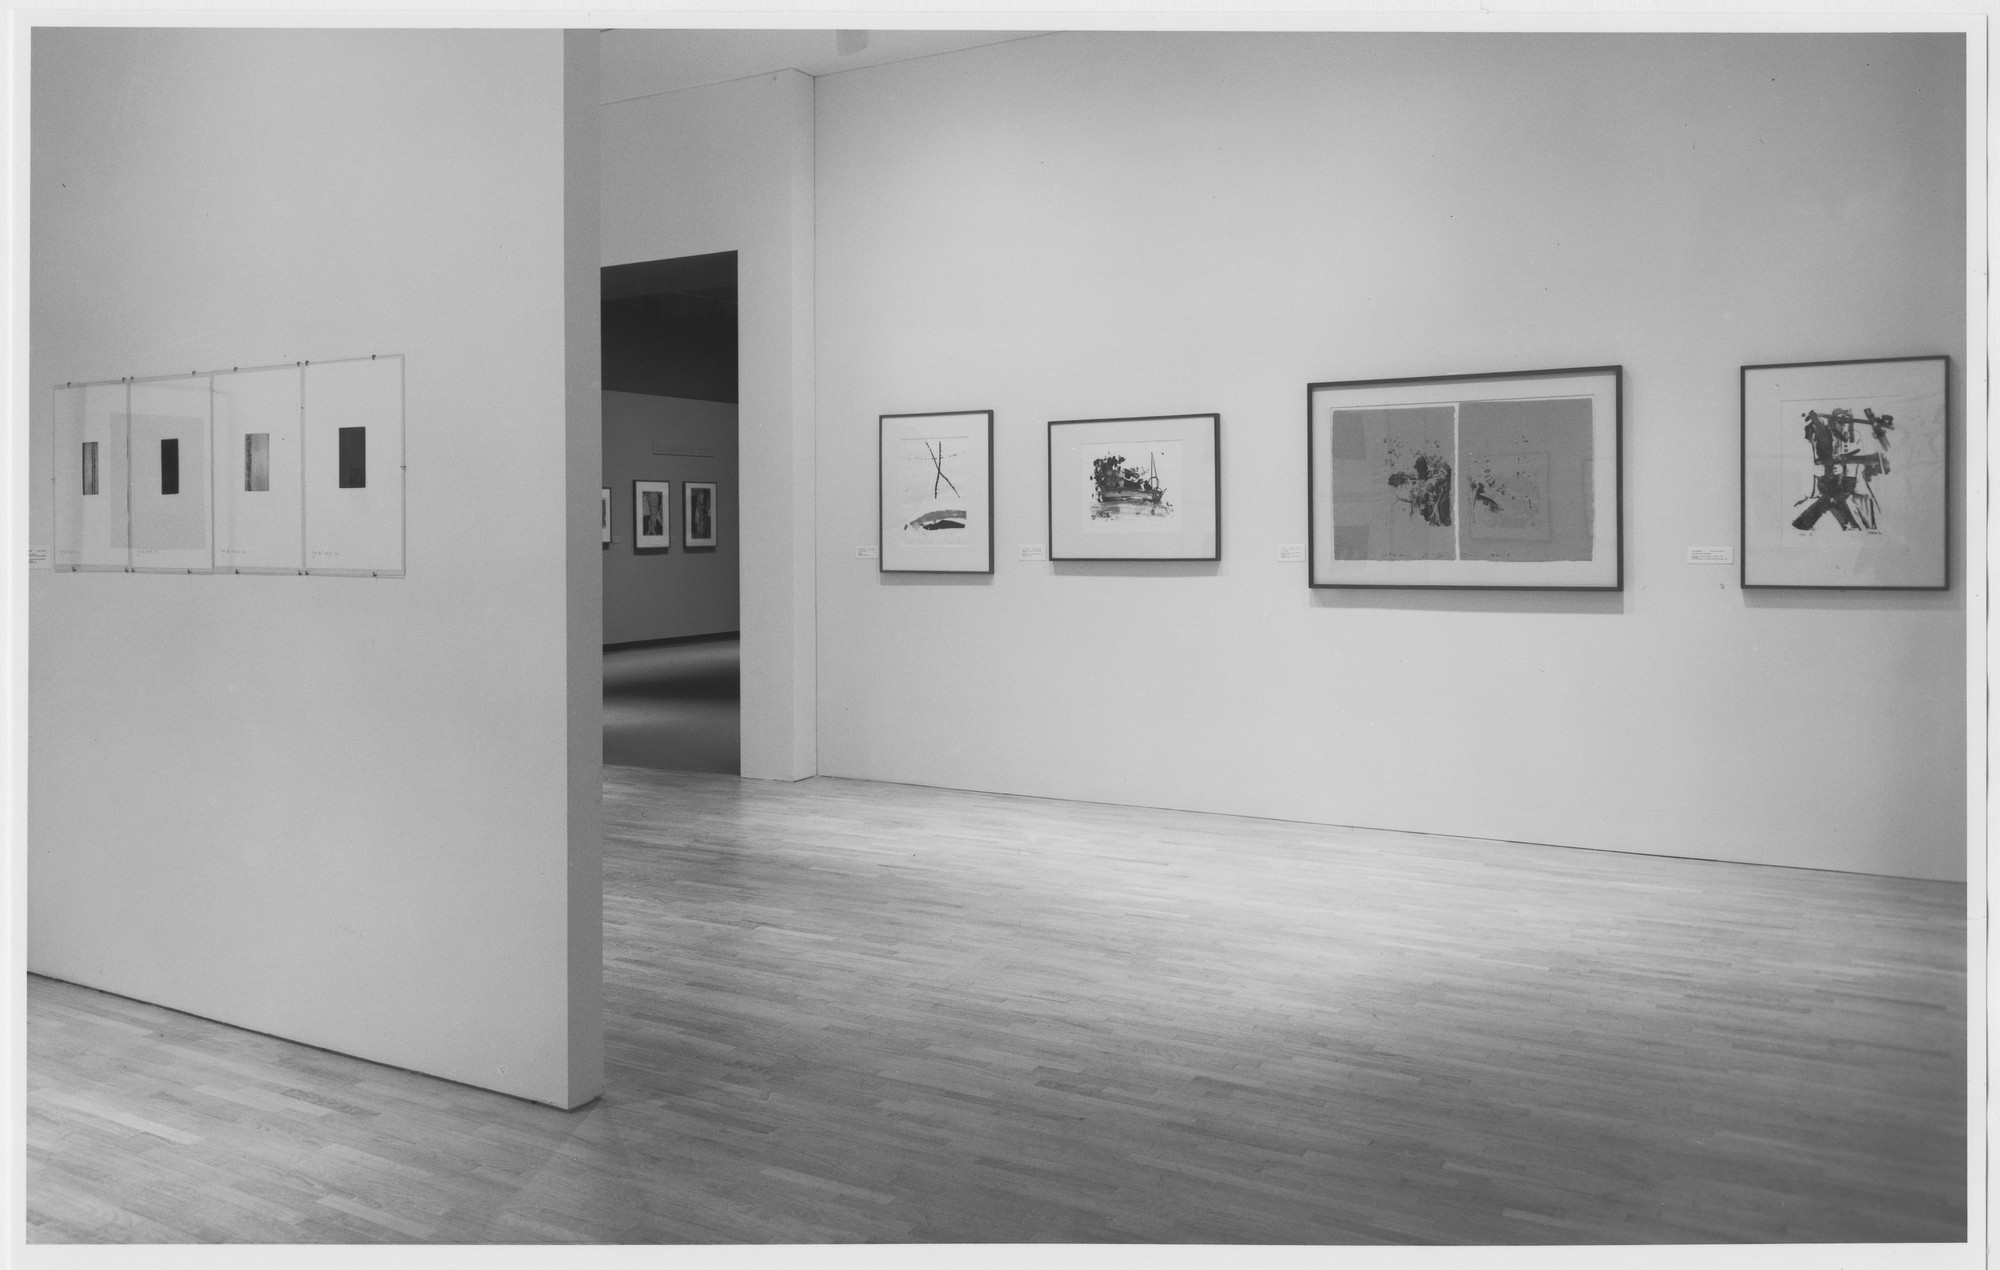 "Installation view of the exhibition, ""Tatyana Grosman Gallery"" September 12, 1985–February 4, 1986. Photographic Archive. The Museum of Modern Art Archives, New York. IN1404b.1. Photograph by Mali Olatunji."